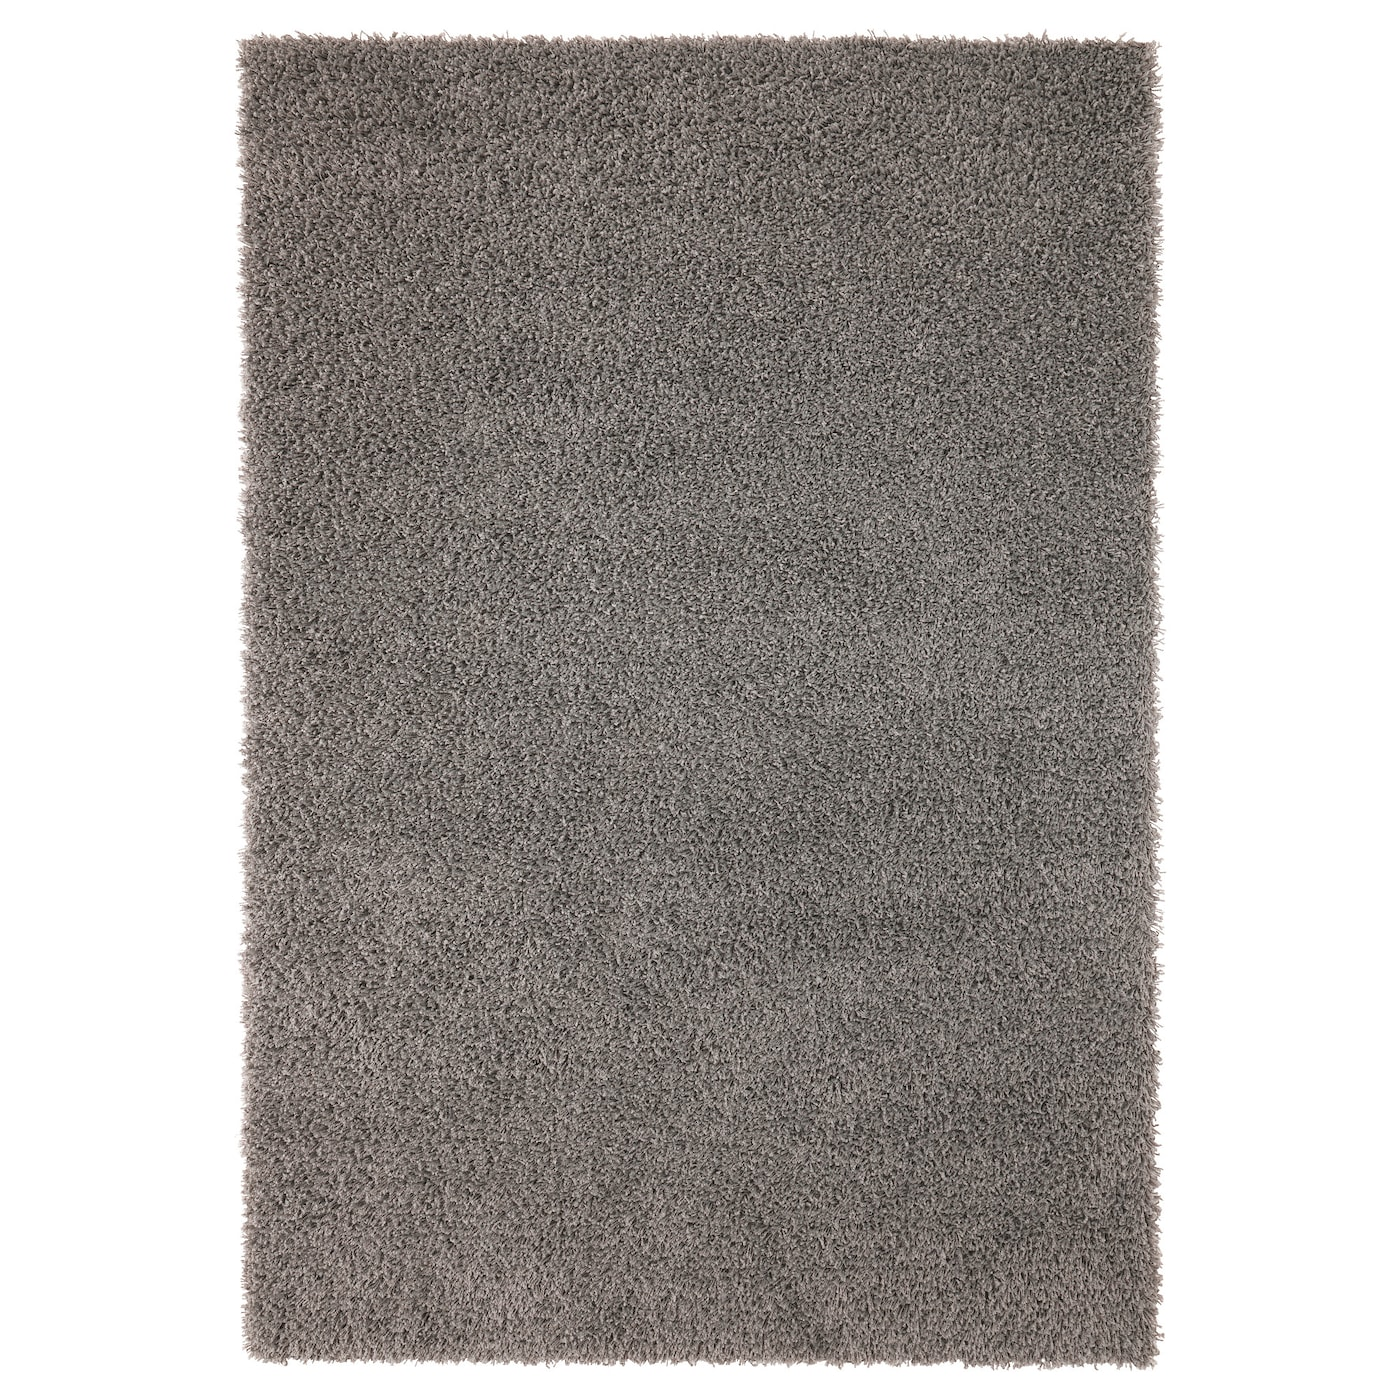 Hampen Rug High Pile Grey Online